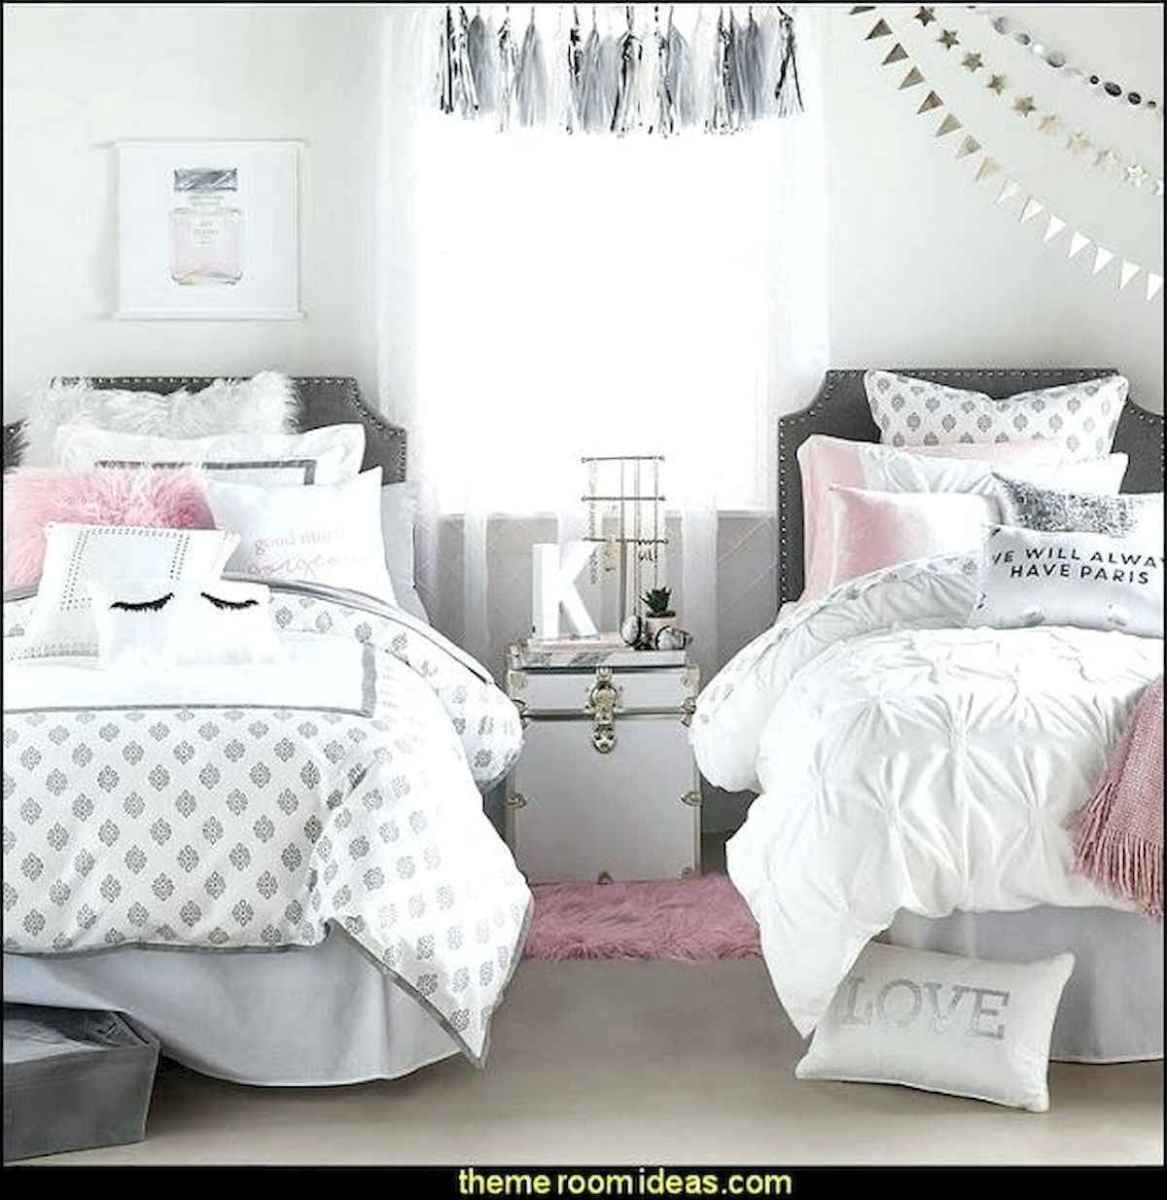 60 Gorgeous College Dorm Room Decorating Ideas And Makeover ...